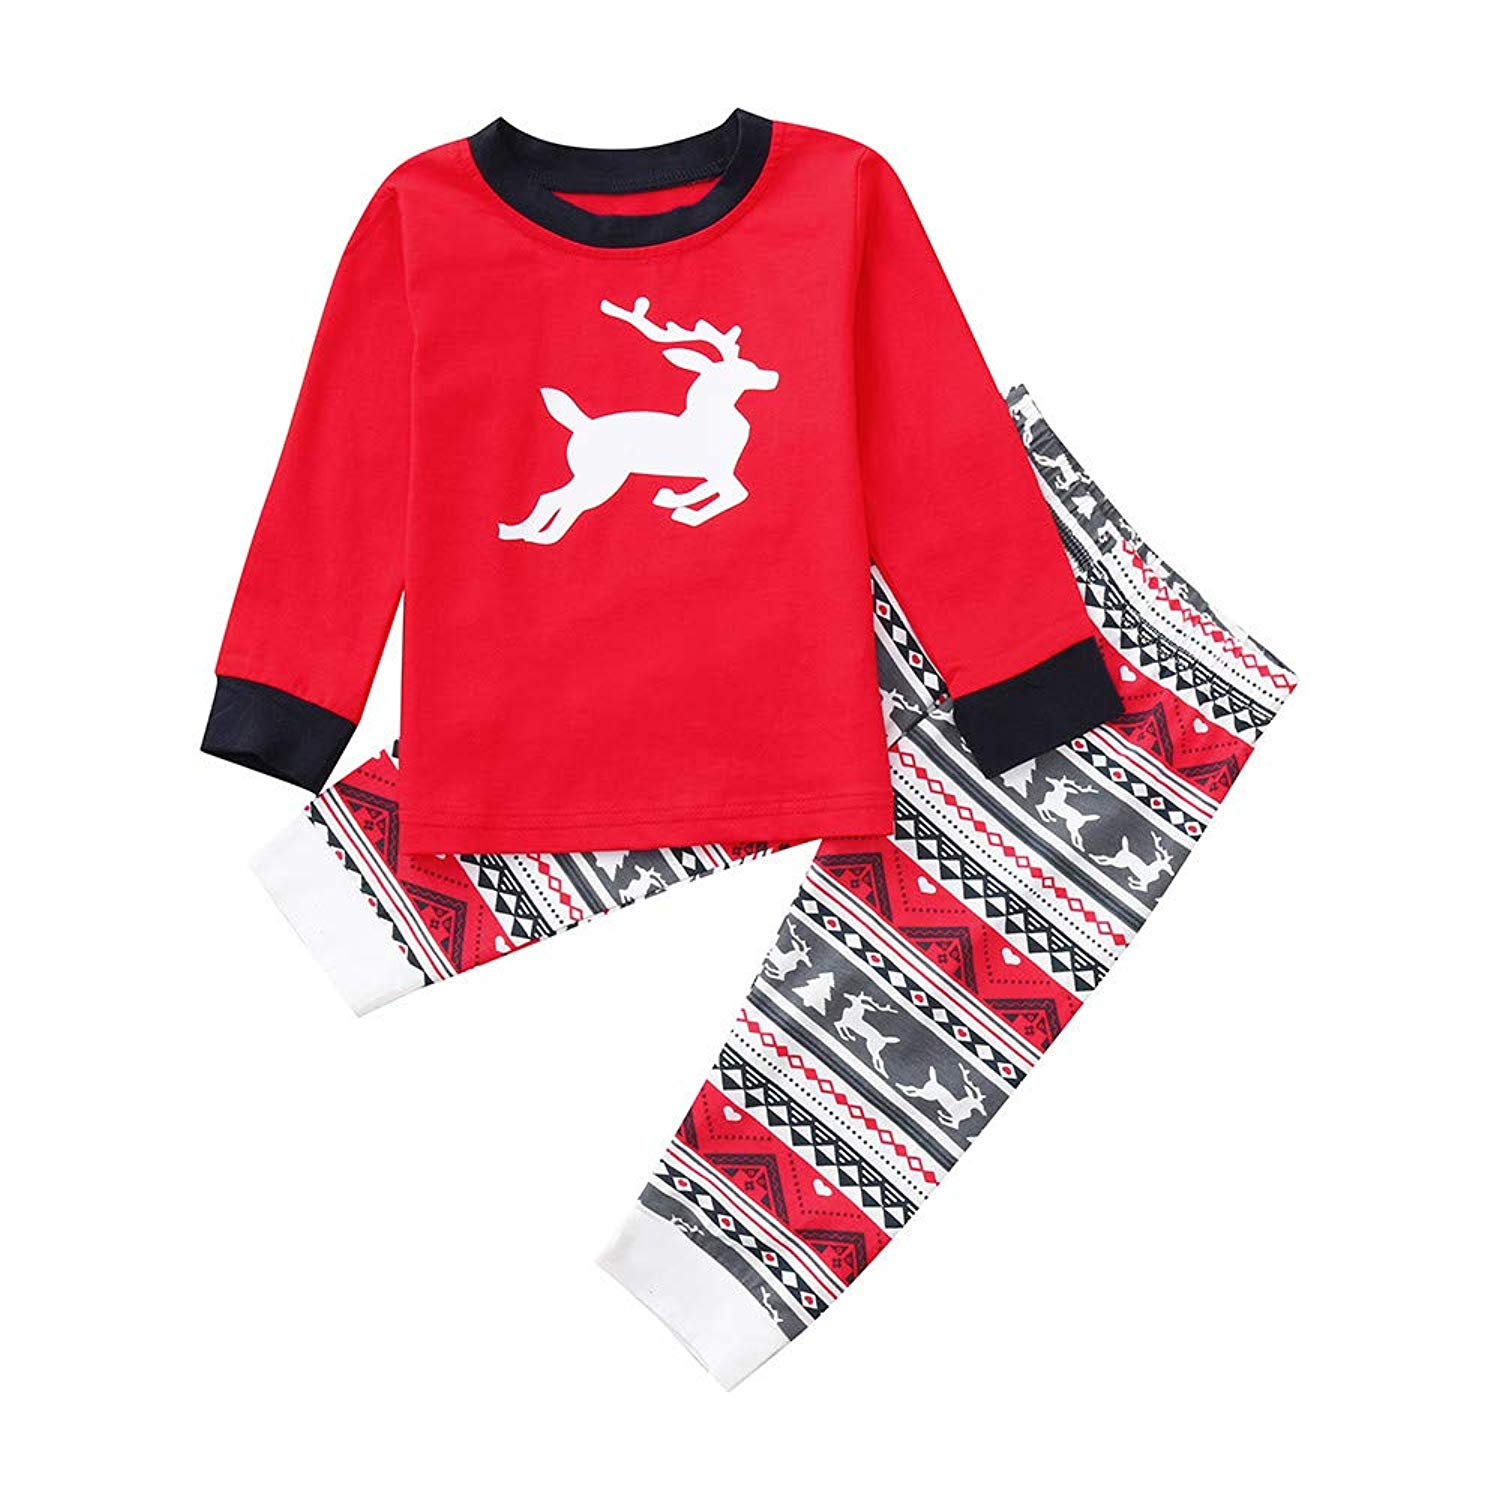 77ad76419a Get Quotations · Jchen(TM) Dad Mom Me Christmas Deer Print Tops Pants Family  Pajamas Sleepwear Christmas